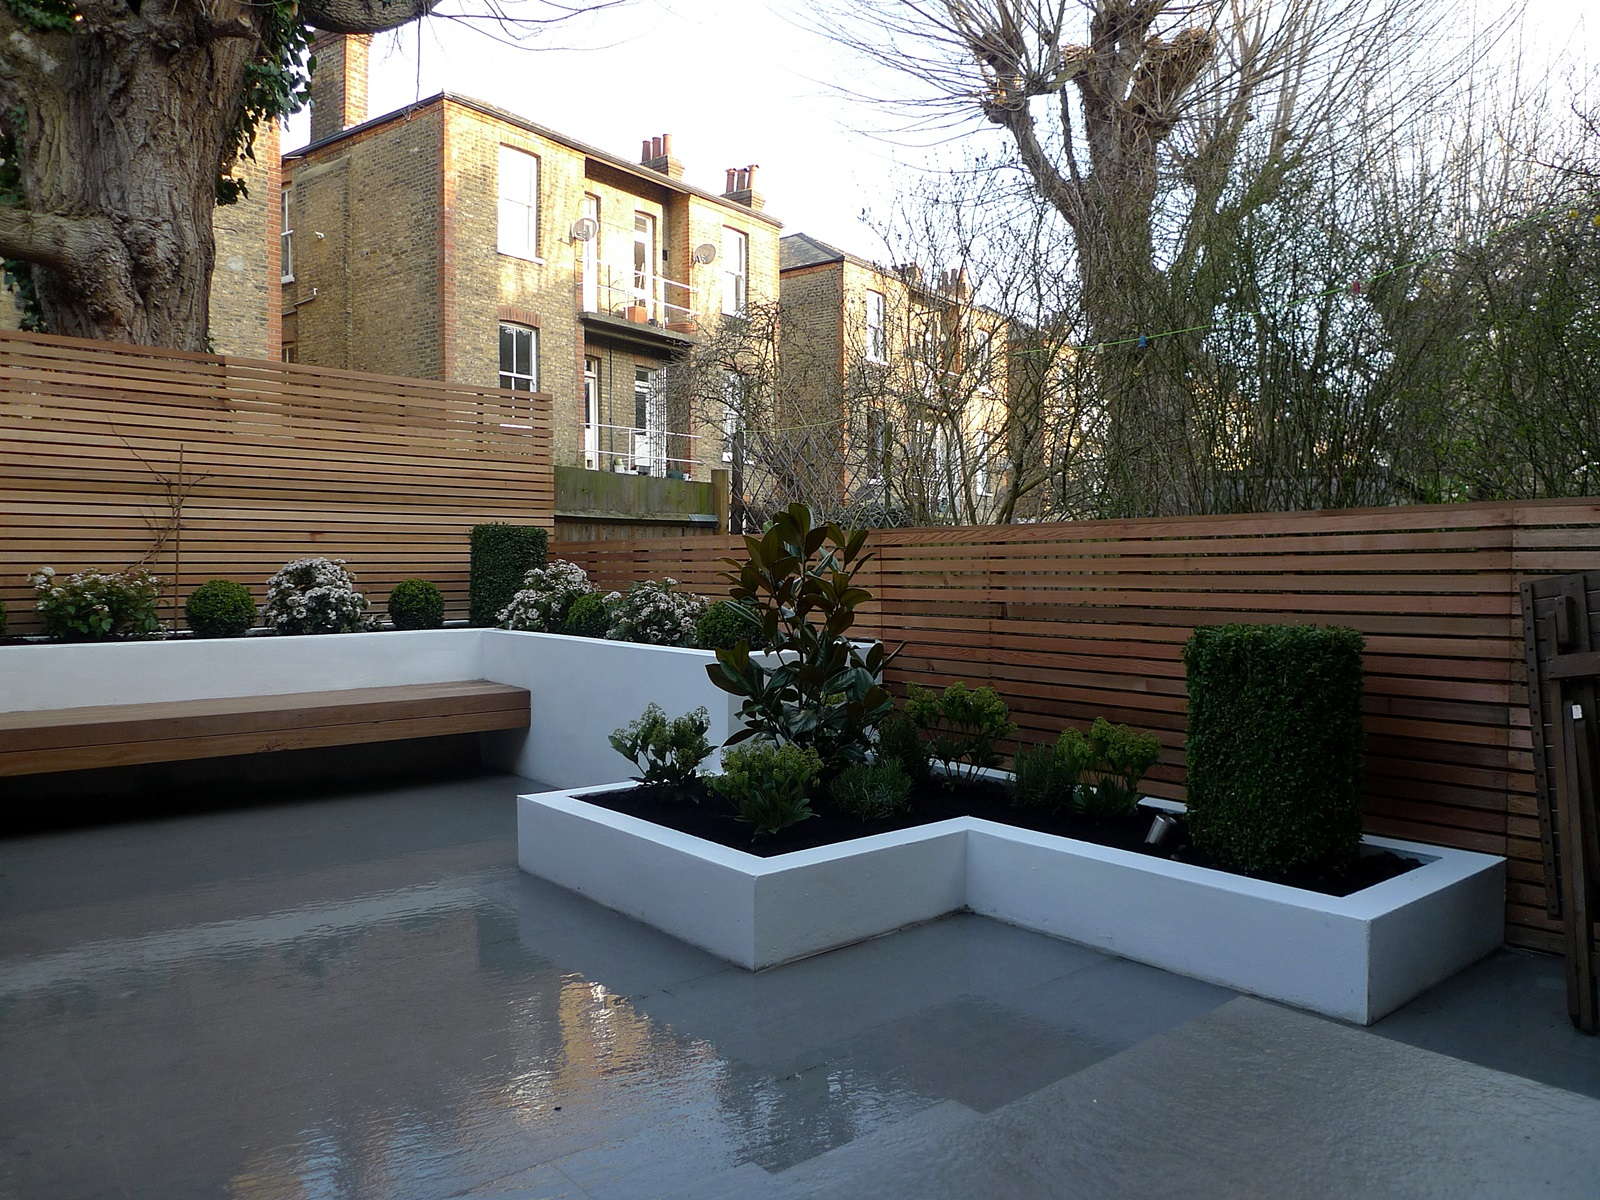 Garden design designer clapham balham battersea small low maintenance modern garden (10)